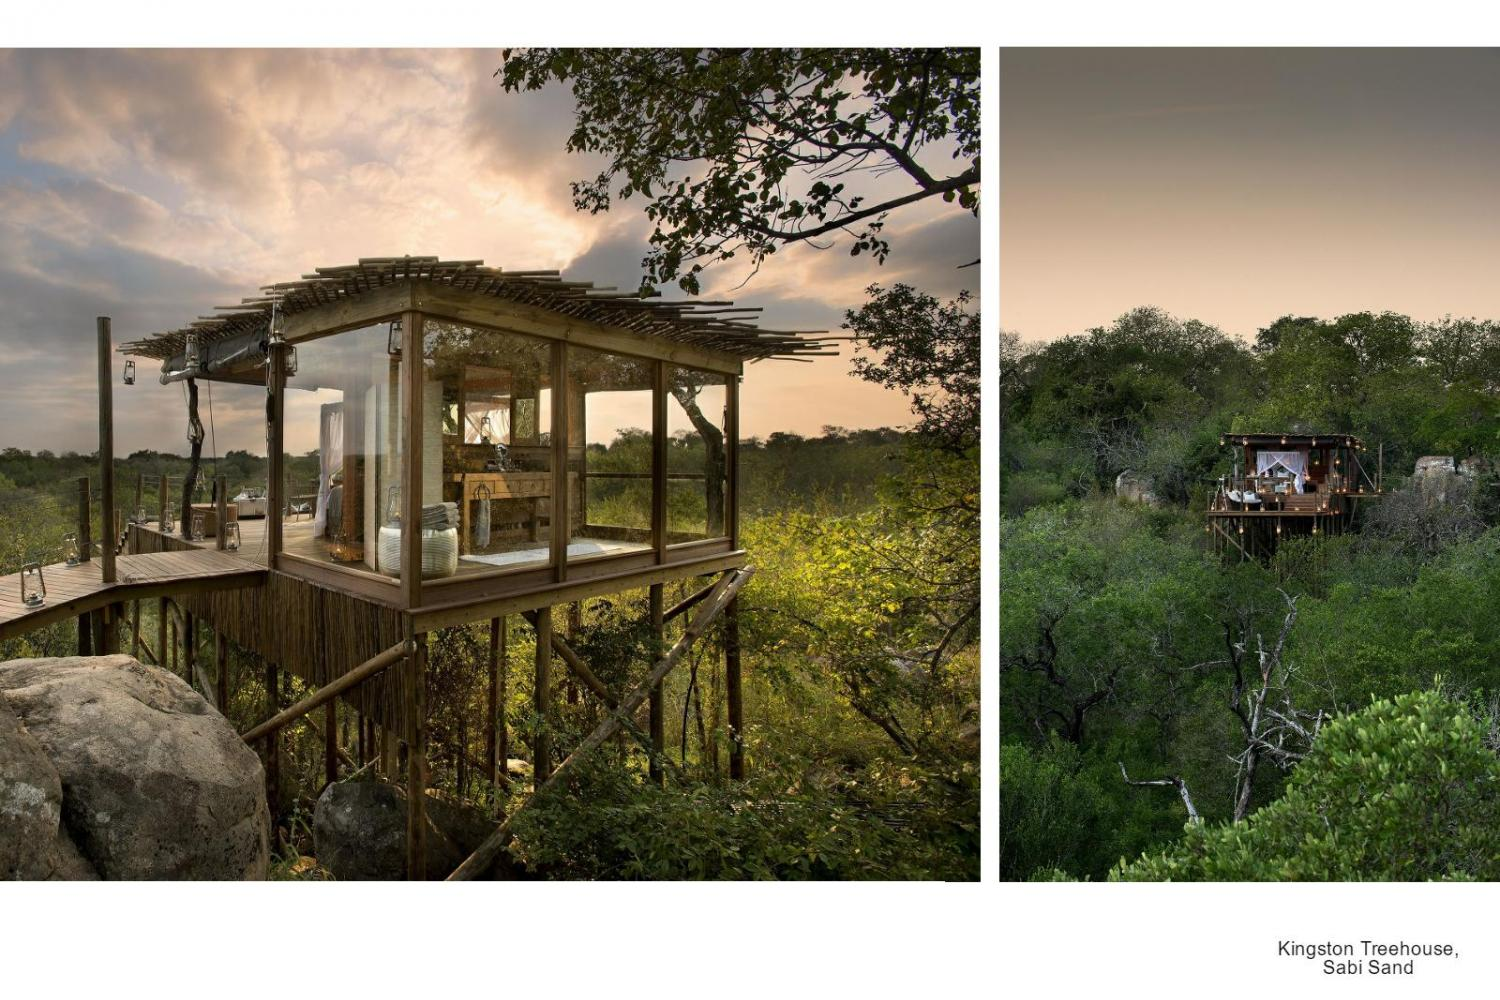 Das Kingston Treehouse, Sabi Sand in Südafrika